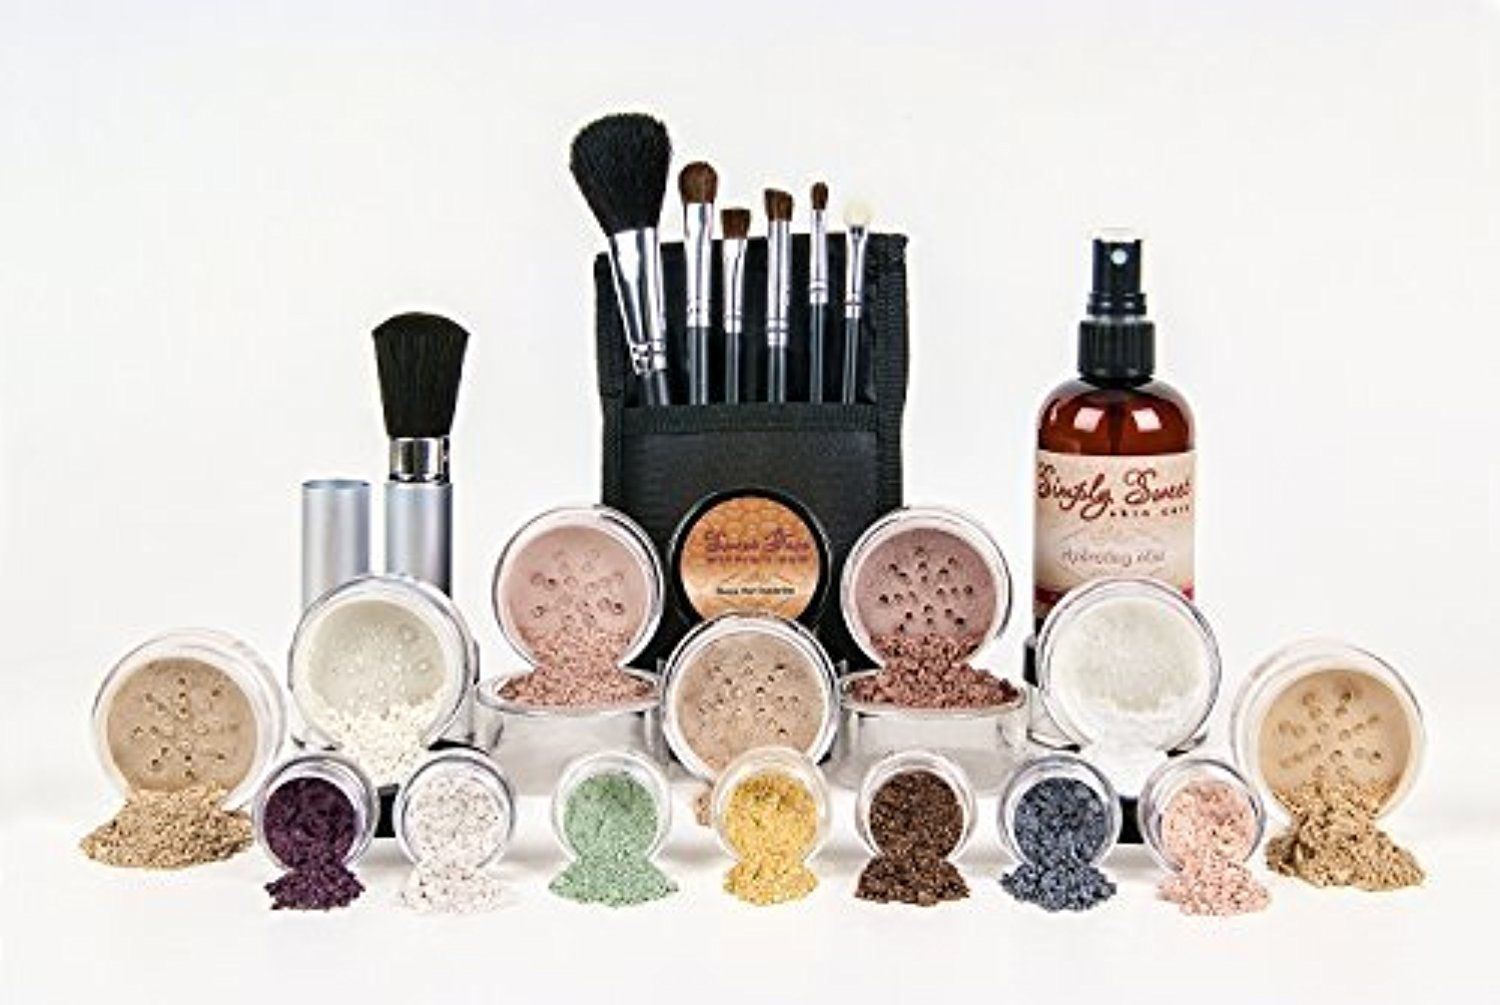 ULTIMATE KITChoose Your Shade Full Size Mineral Makeup